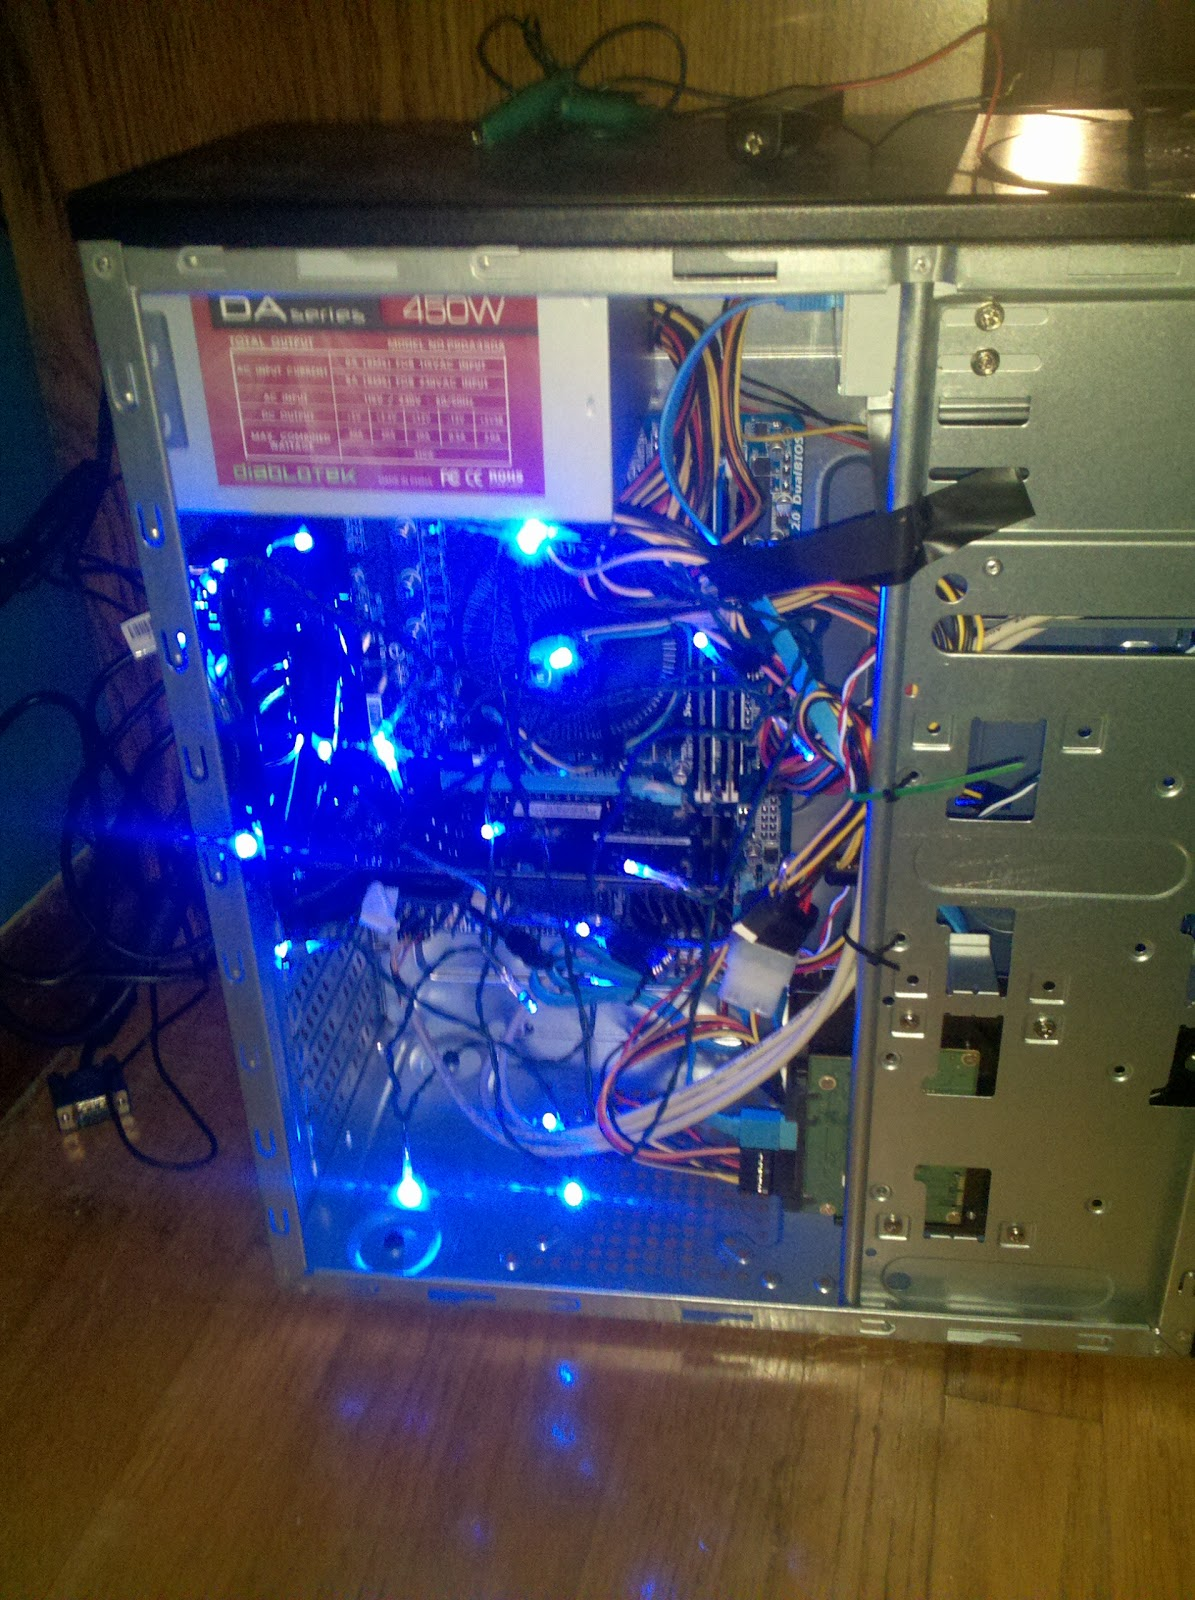 Adventures in IT: DIY PC Tower Case Using LED Christmas Lights & USB ...